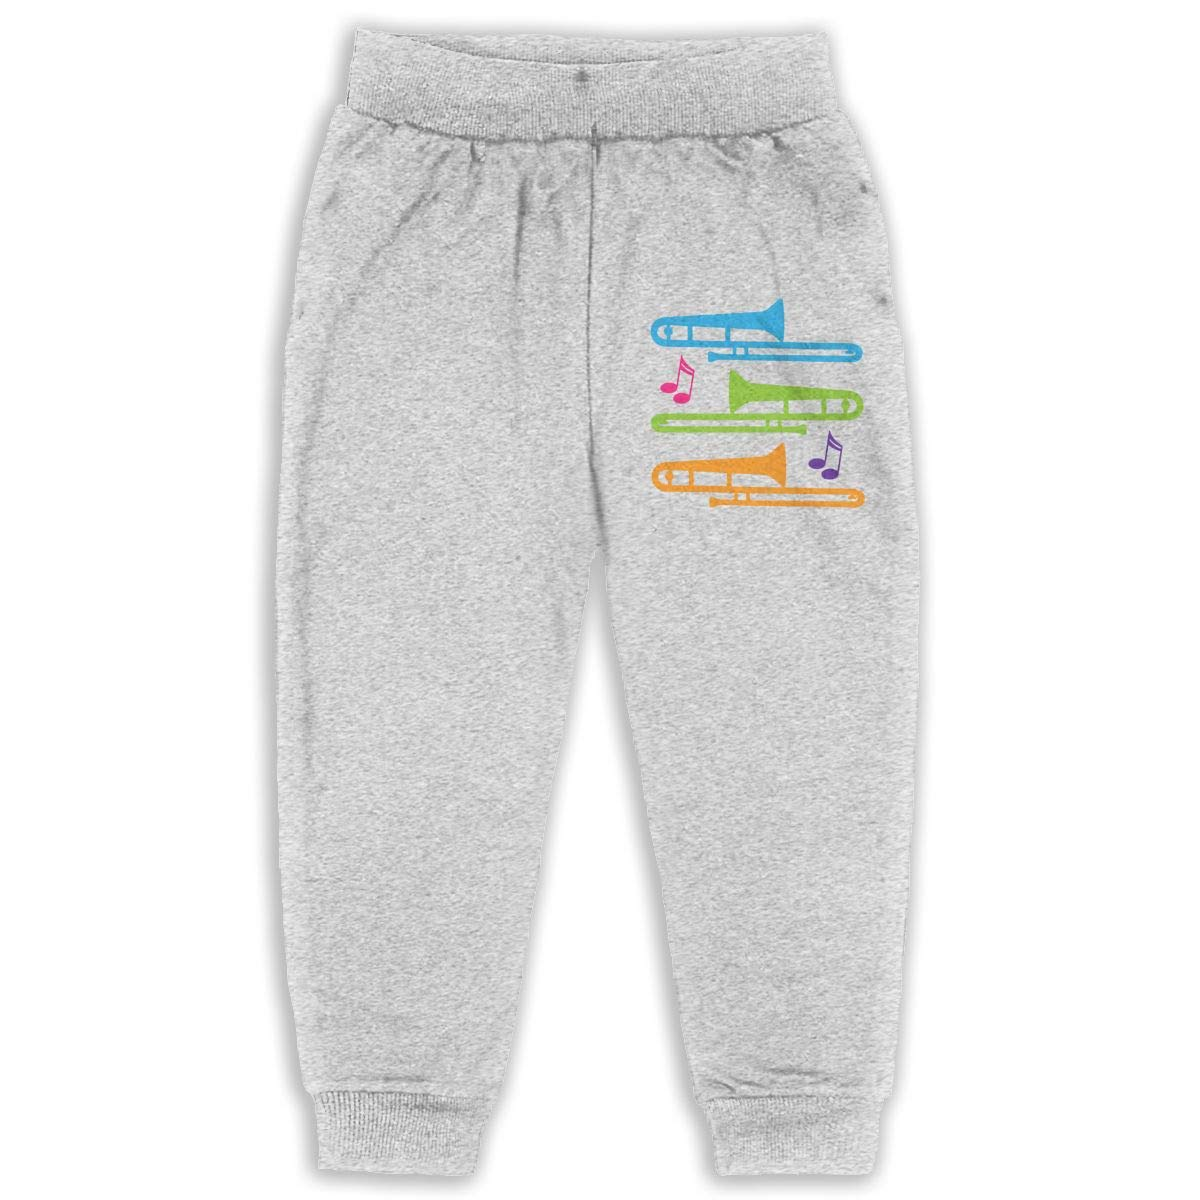 Never-Cold Colorful Trombones Toddler Boys Sweatpants Elastic Waist Pants for 2T-6T